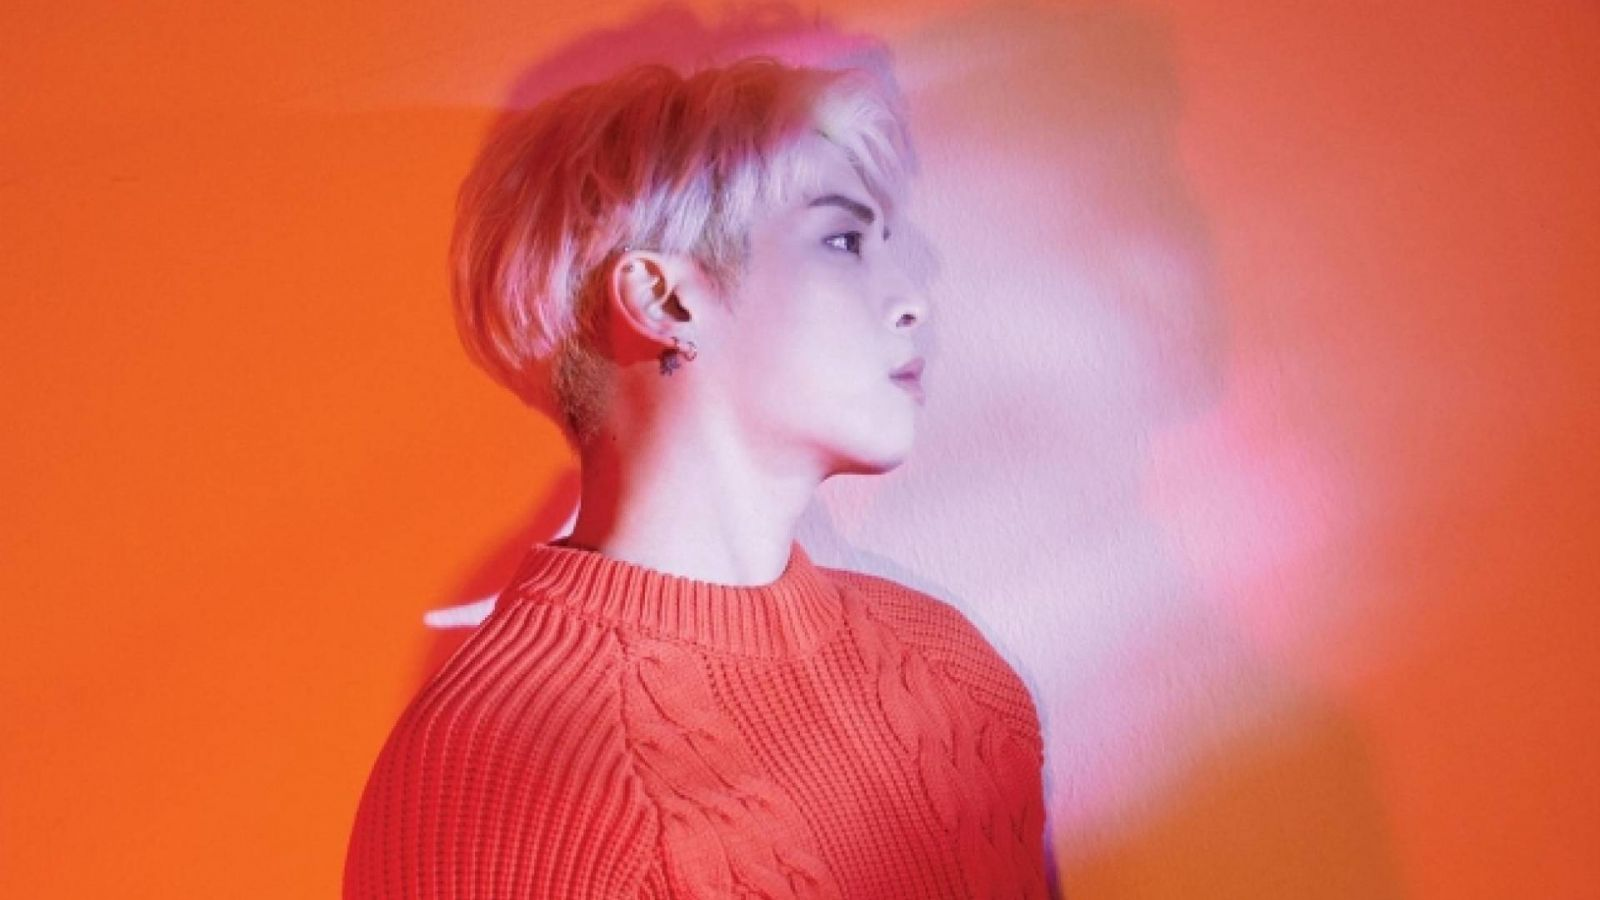 SM Released Jonghyun's Final Album © SM Entertainment Co., Ltd. All rights reserved.